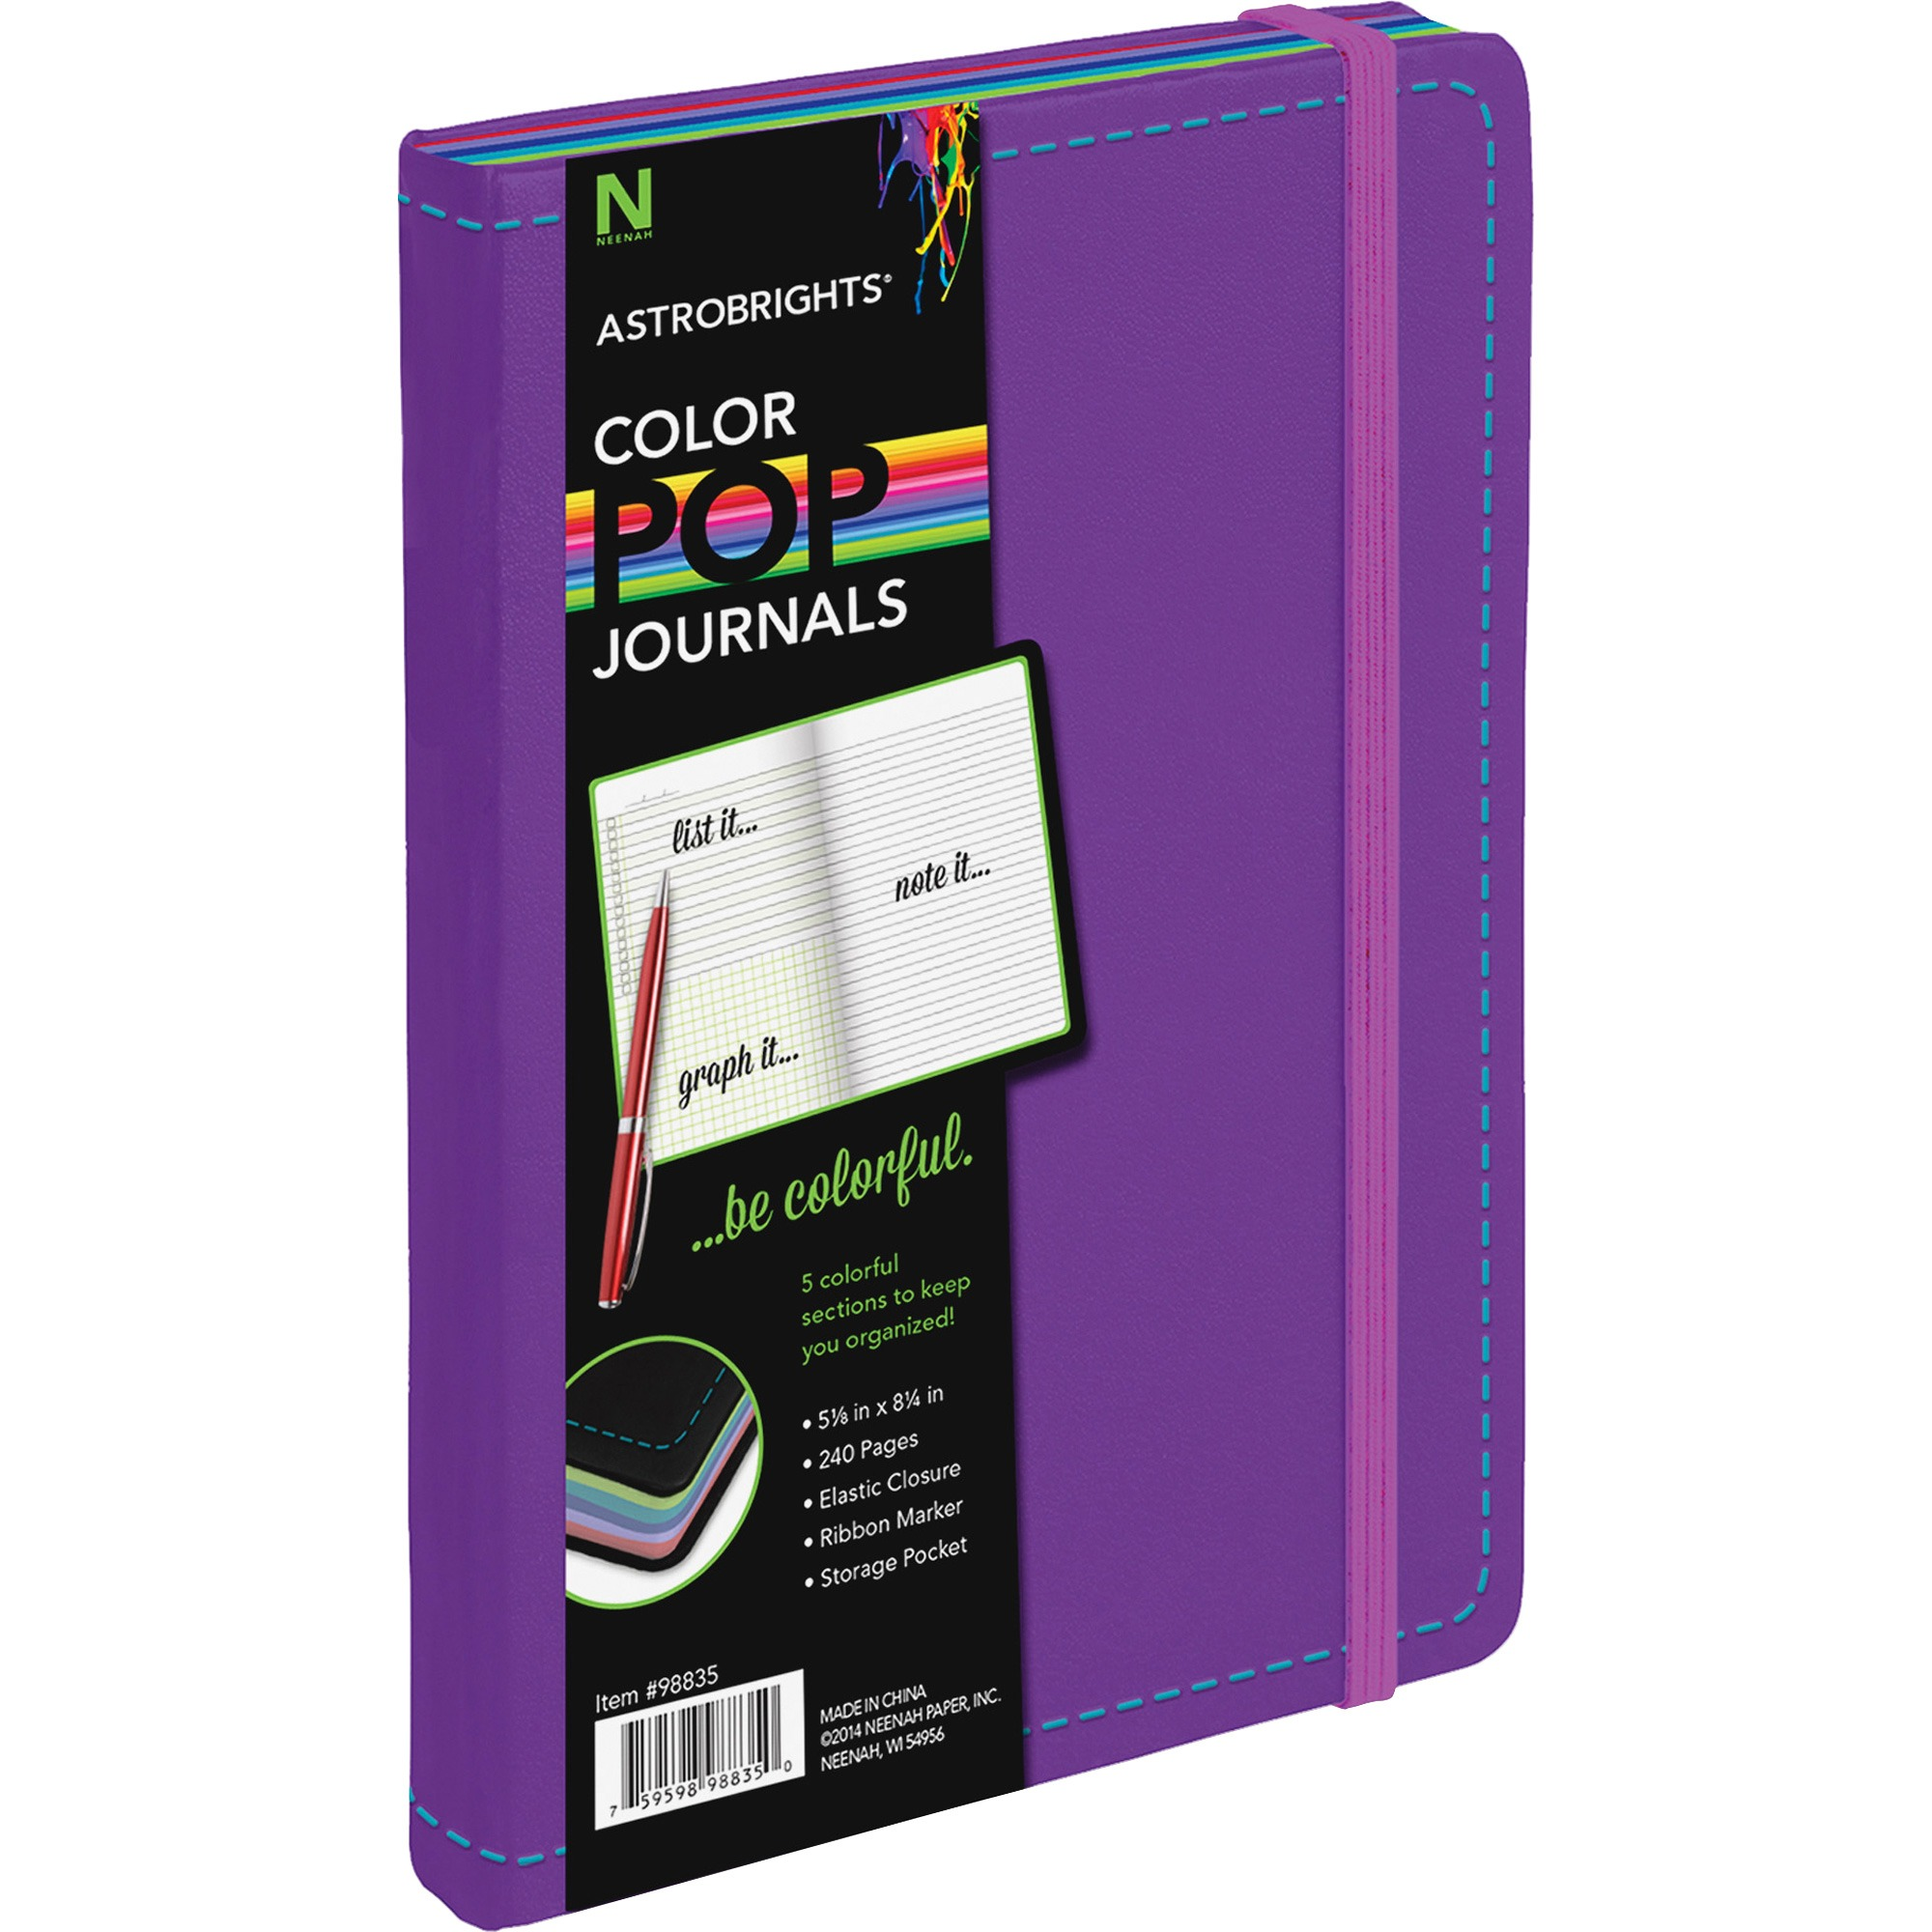 Astrobrights, NEE98831, Leatherette Journal, 240 / Each